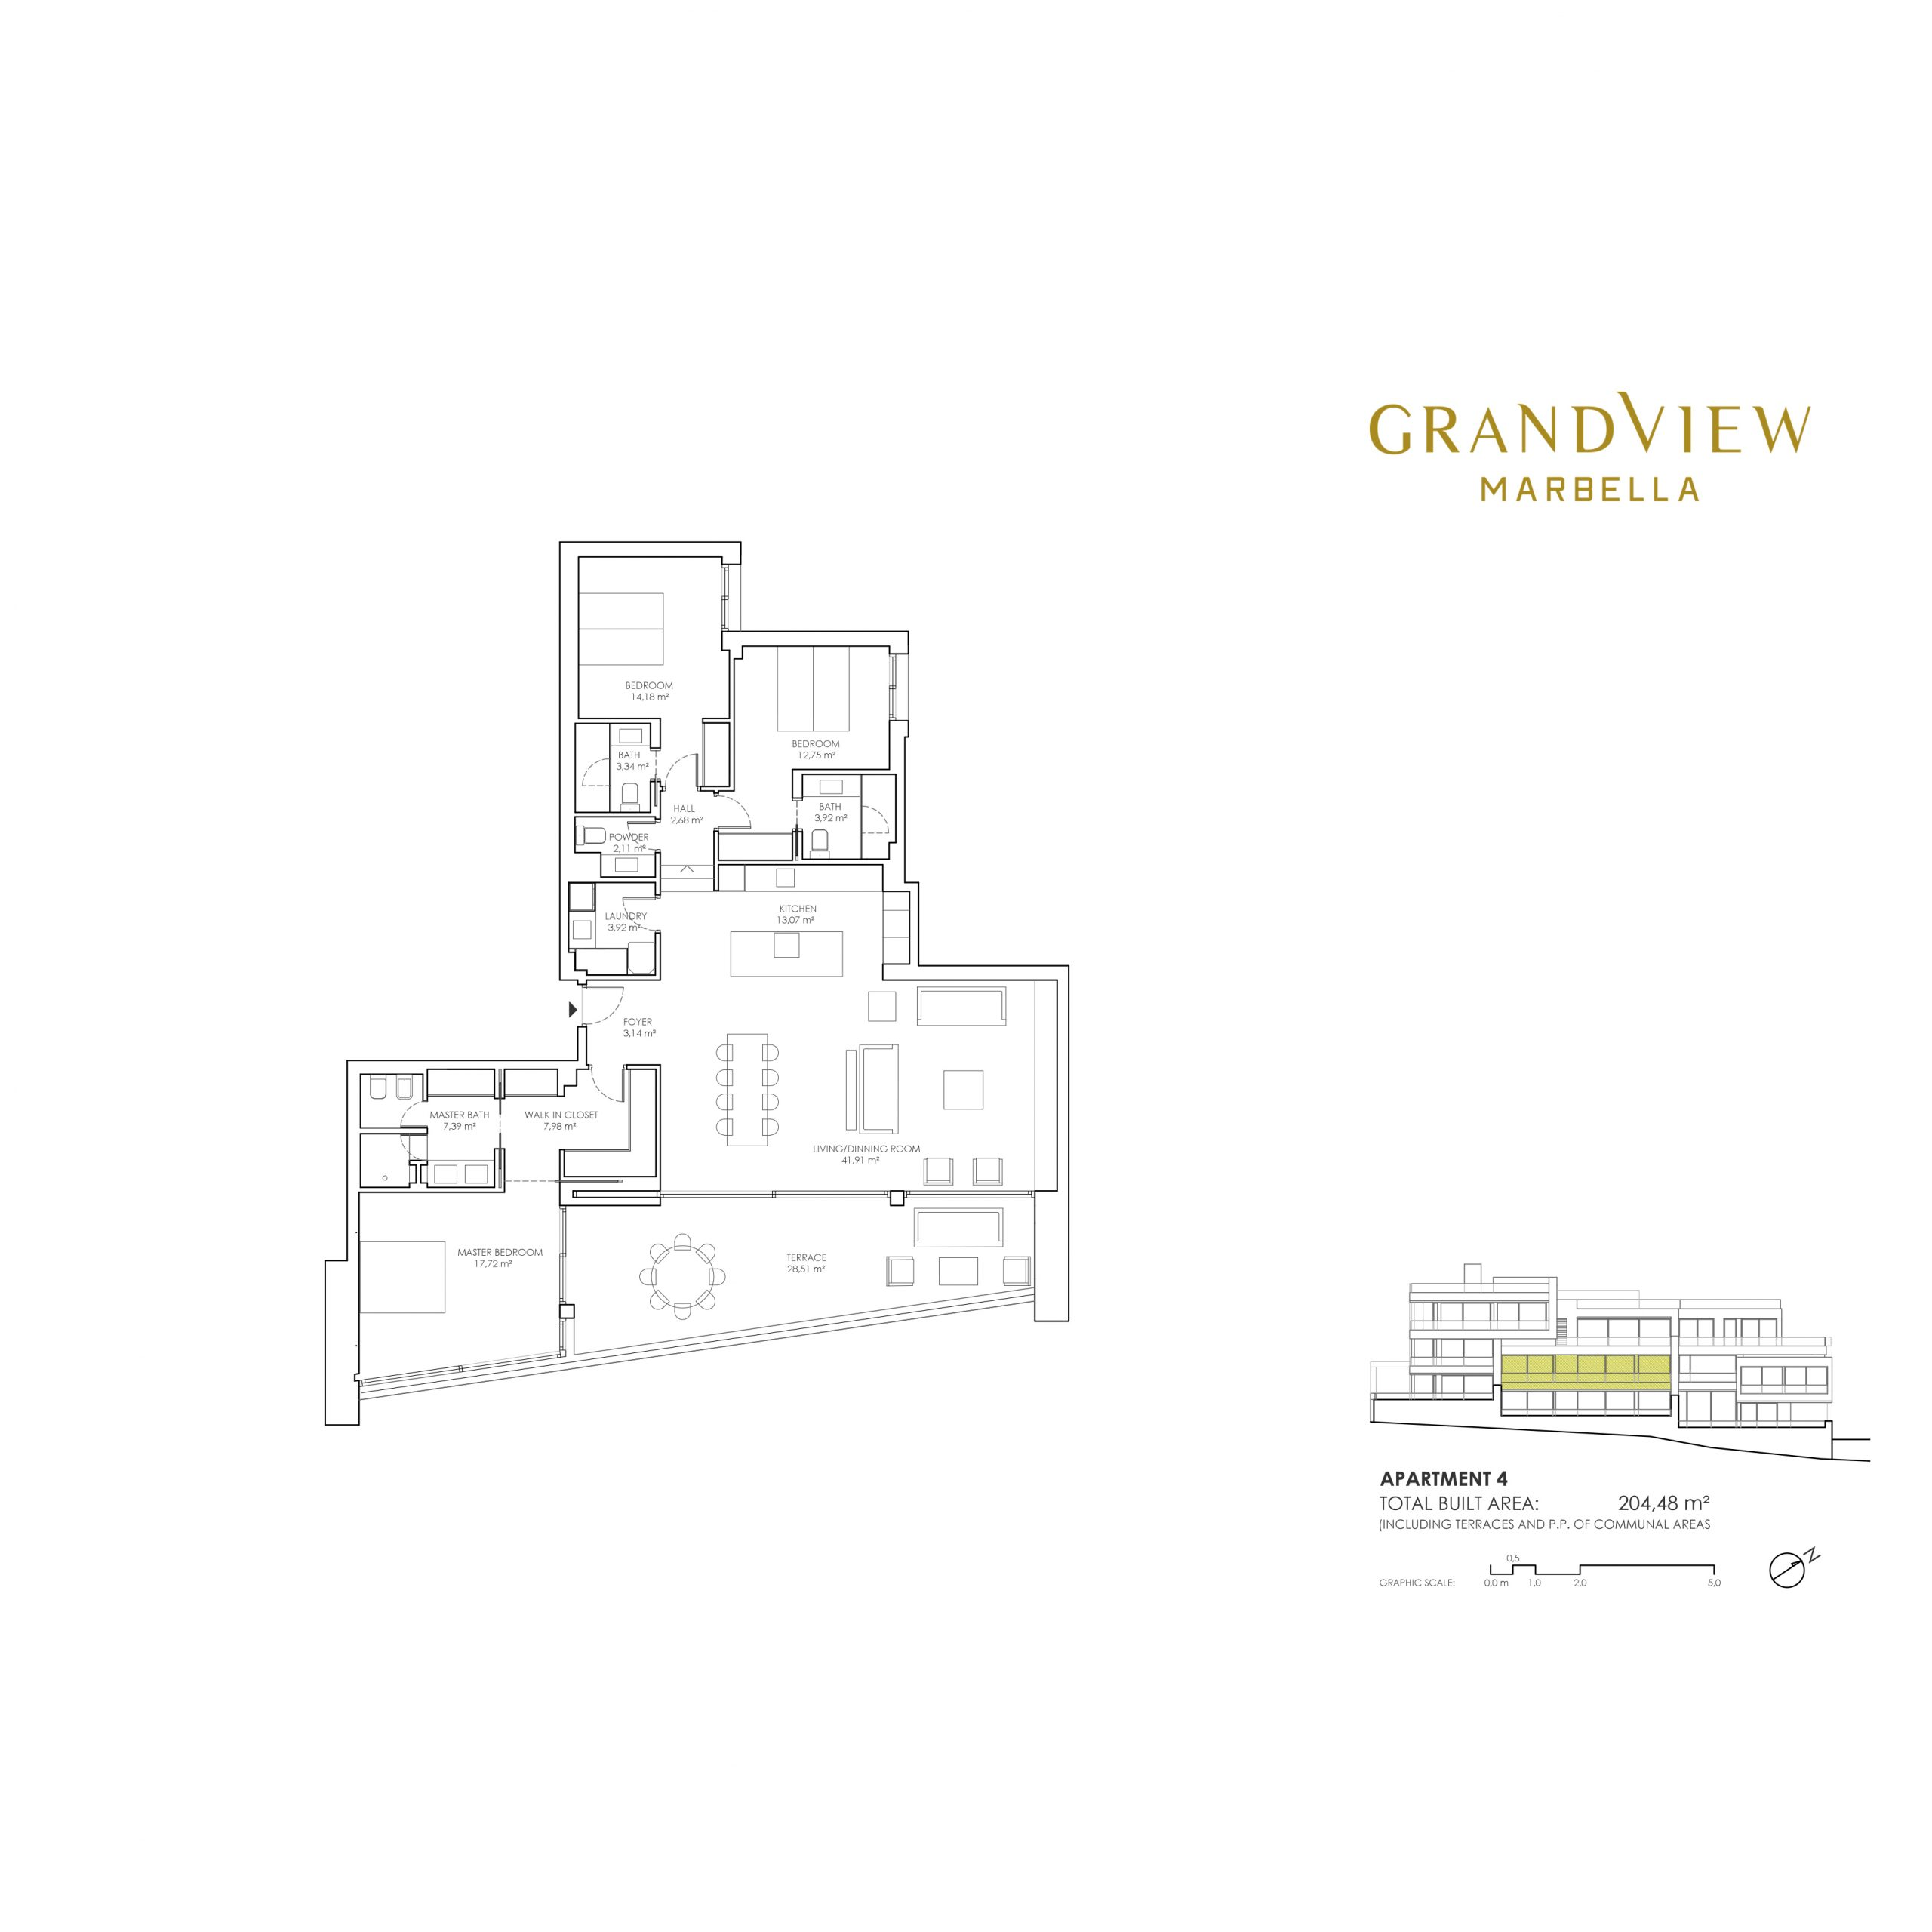 Grand View Marbella Apartment 4 floorplan